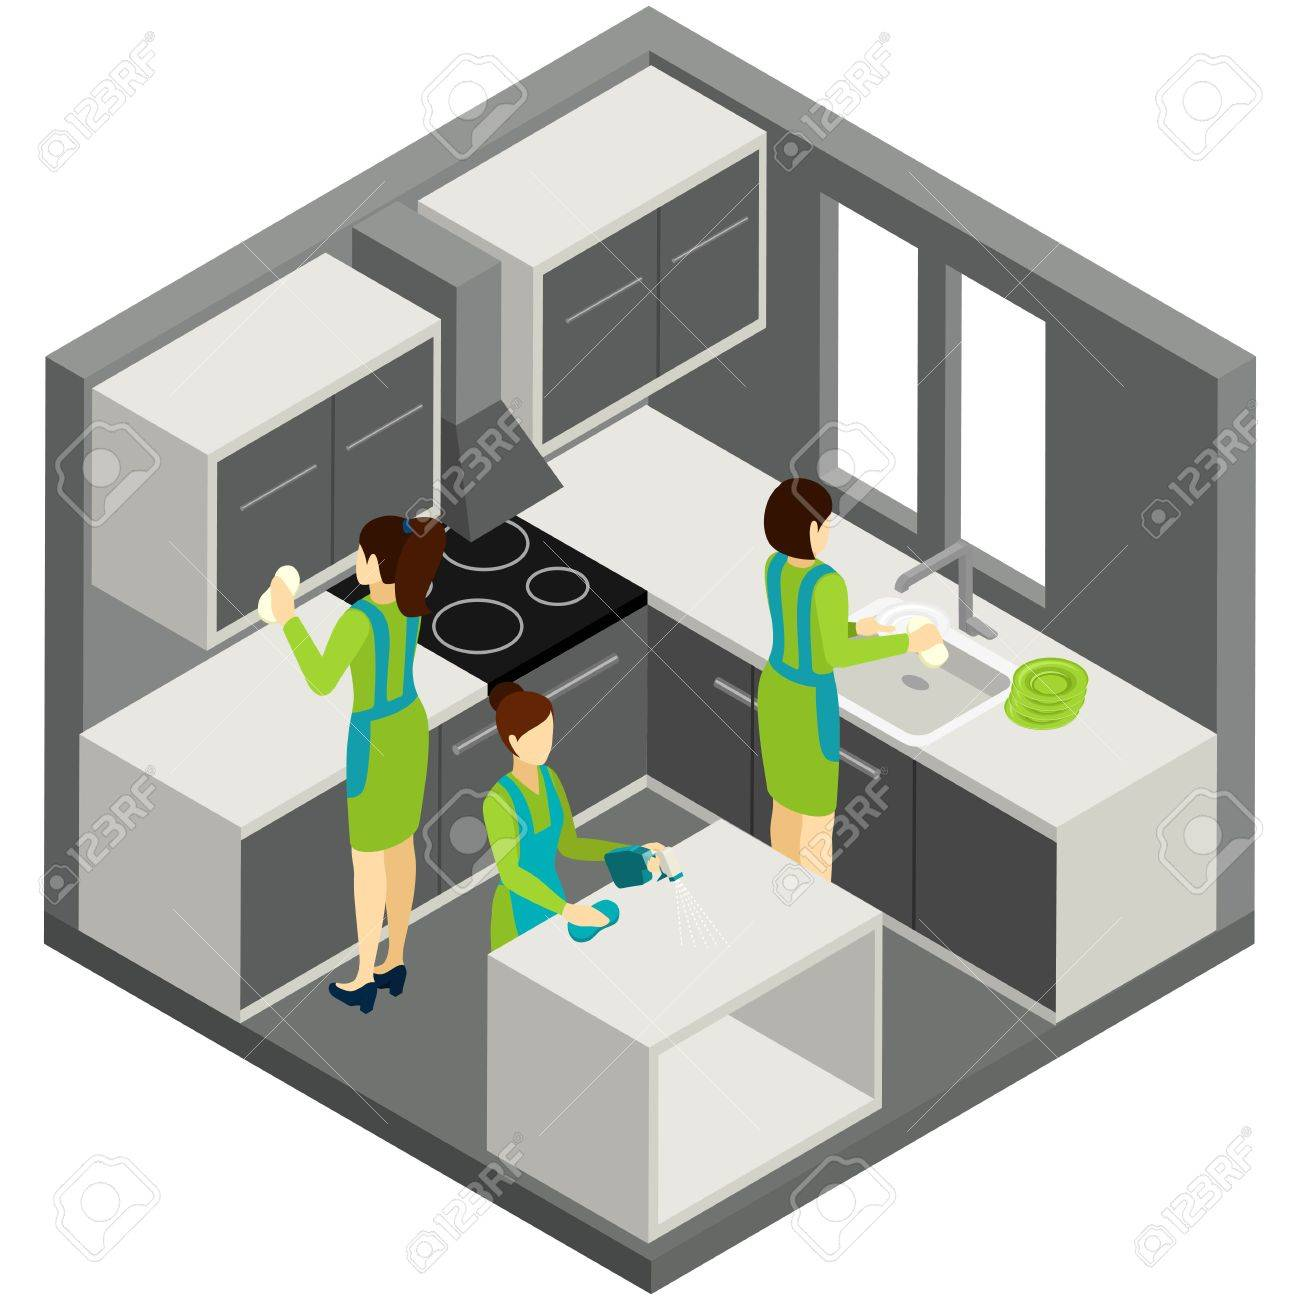 Professional Residential Maids In Green Uniforms Providing Quality Kitchen  Cleaning Services Abstract Isometric Pictogram Banner Vector